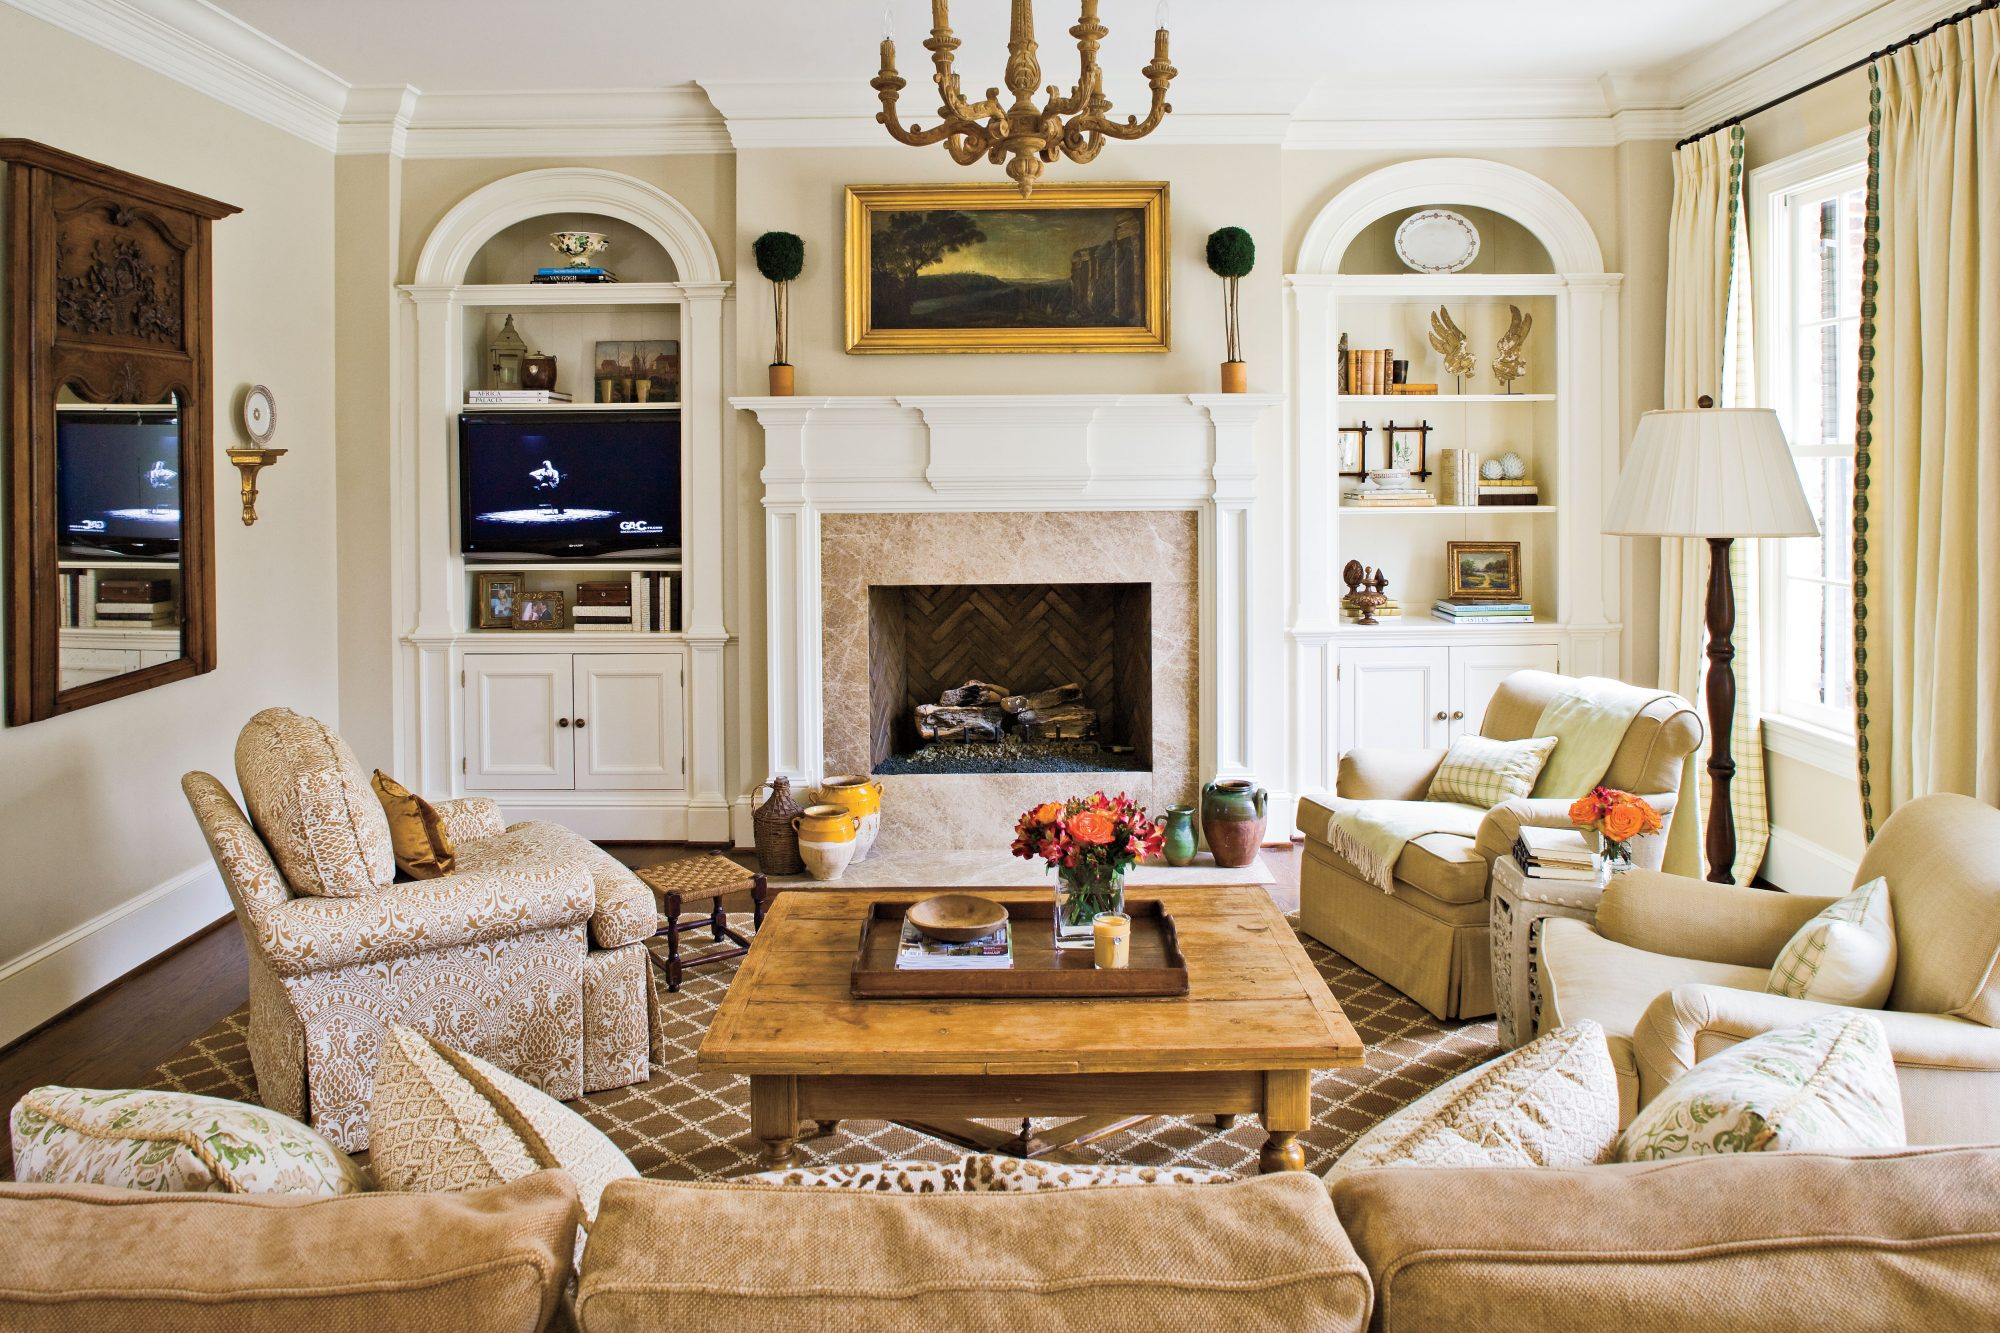 The White's Family Room Fireplace